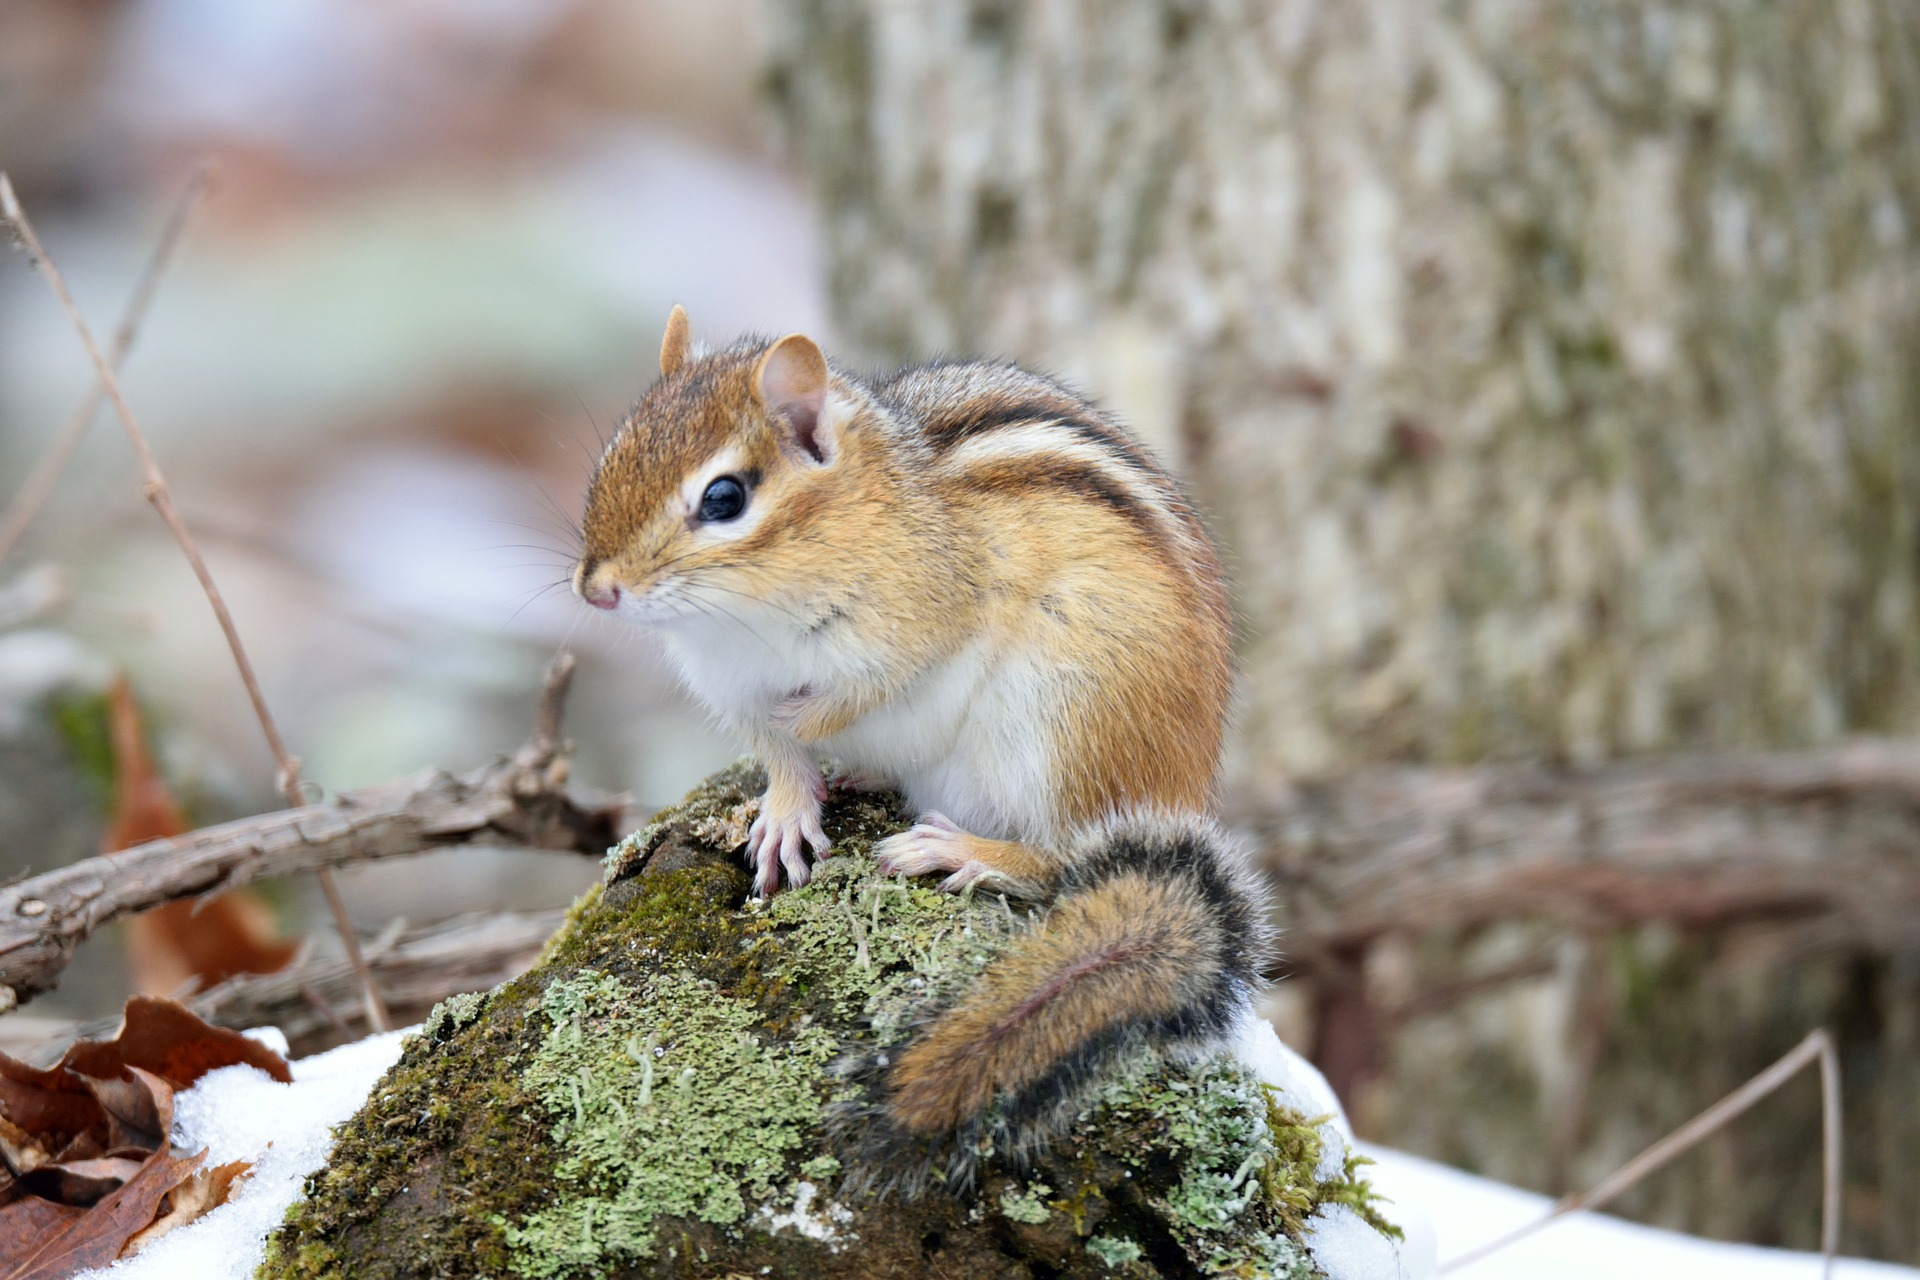 Image of chipmunk in snowy forest